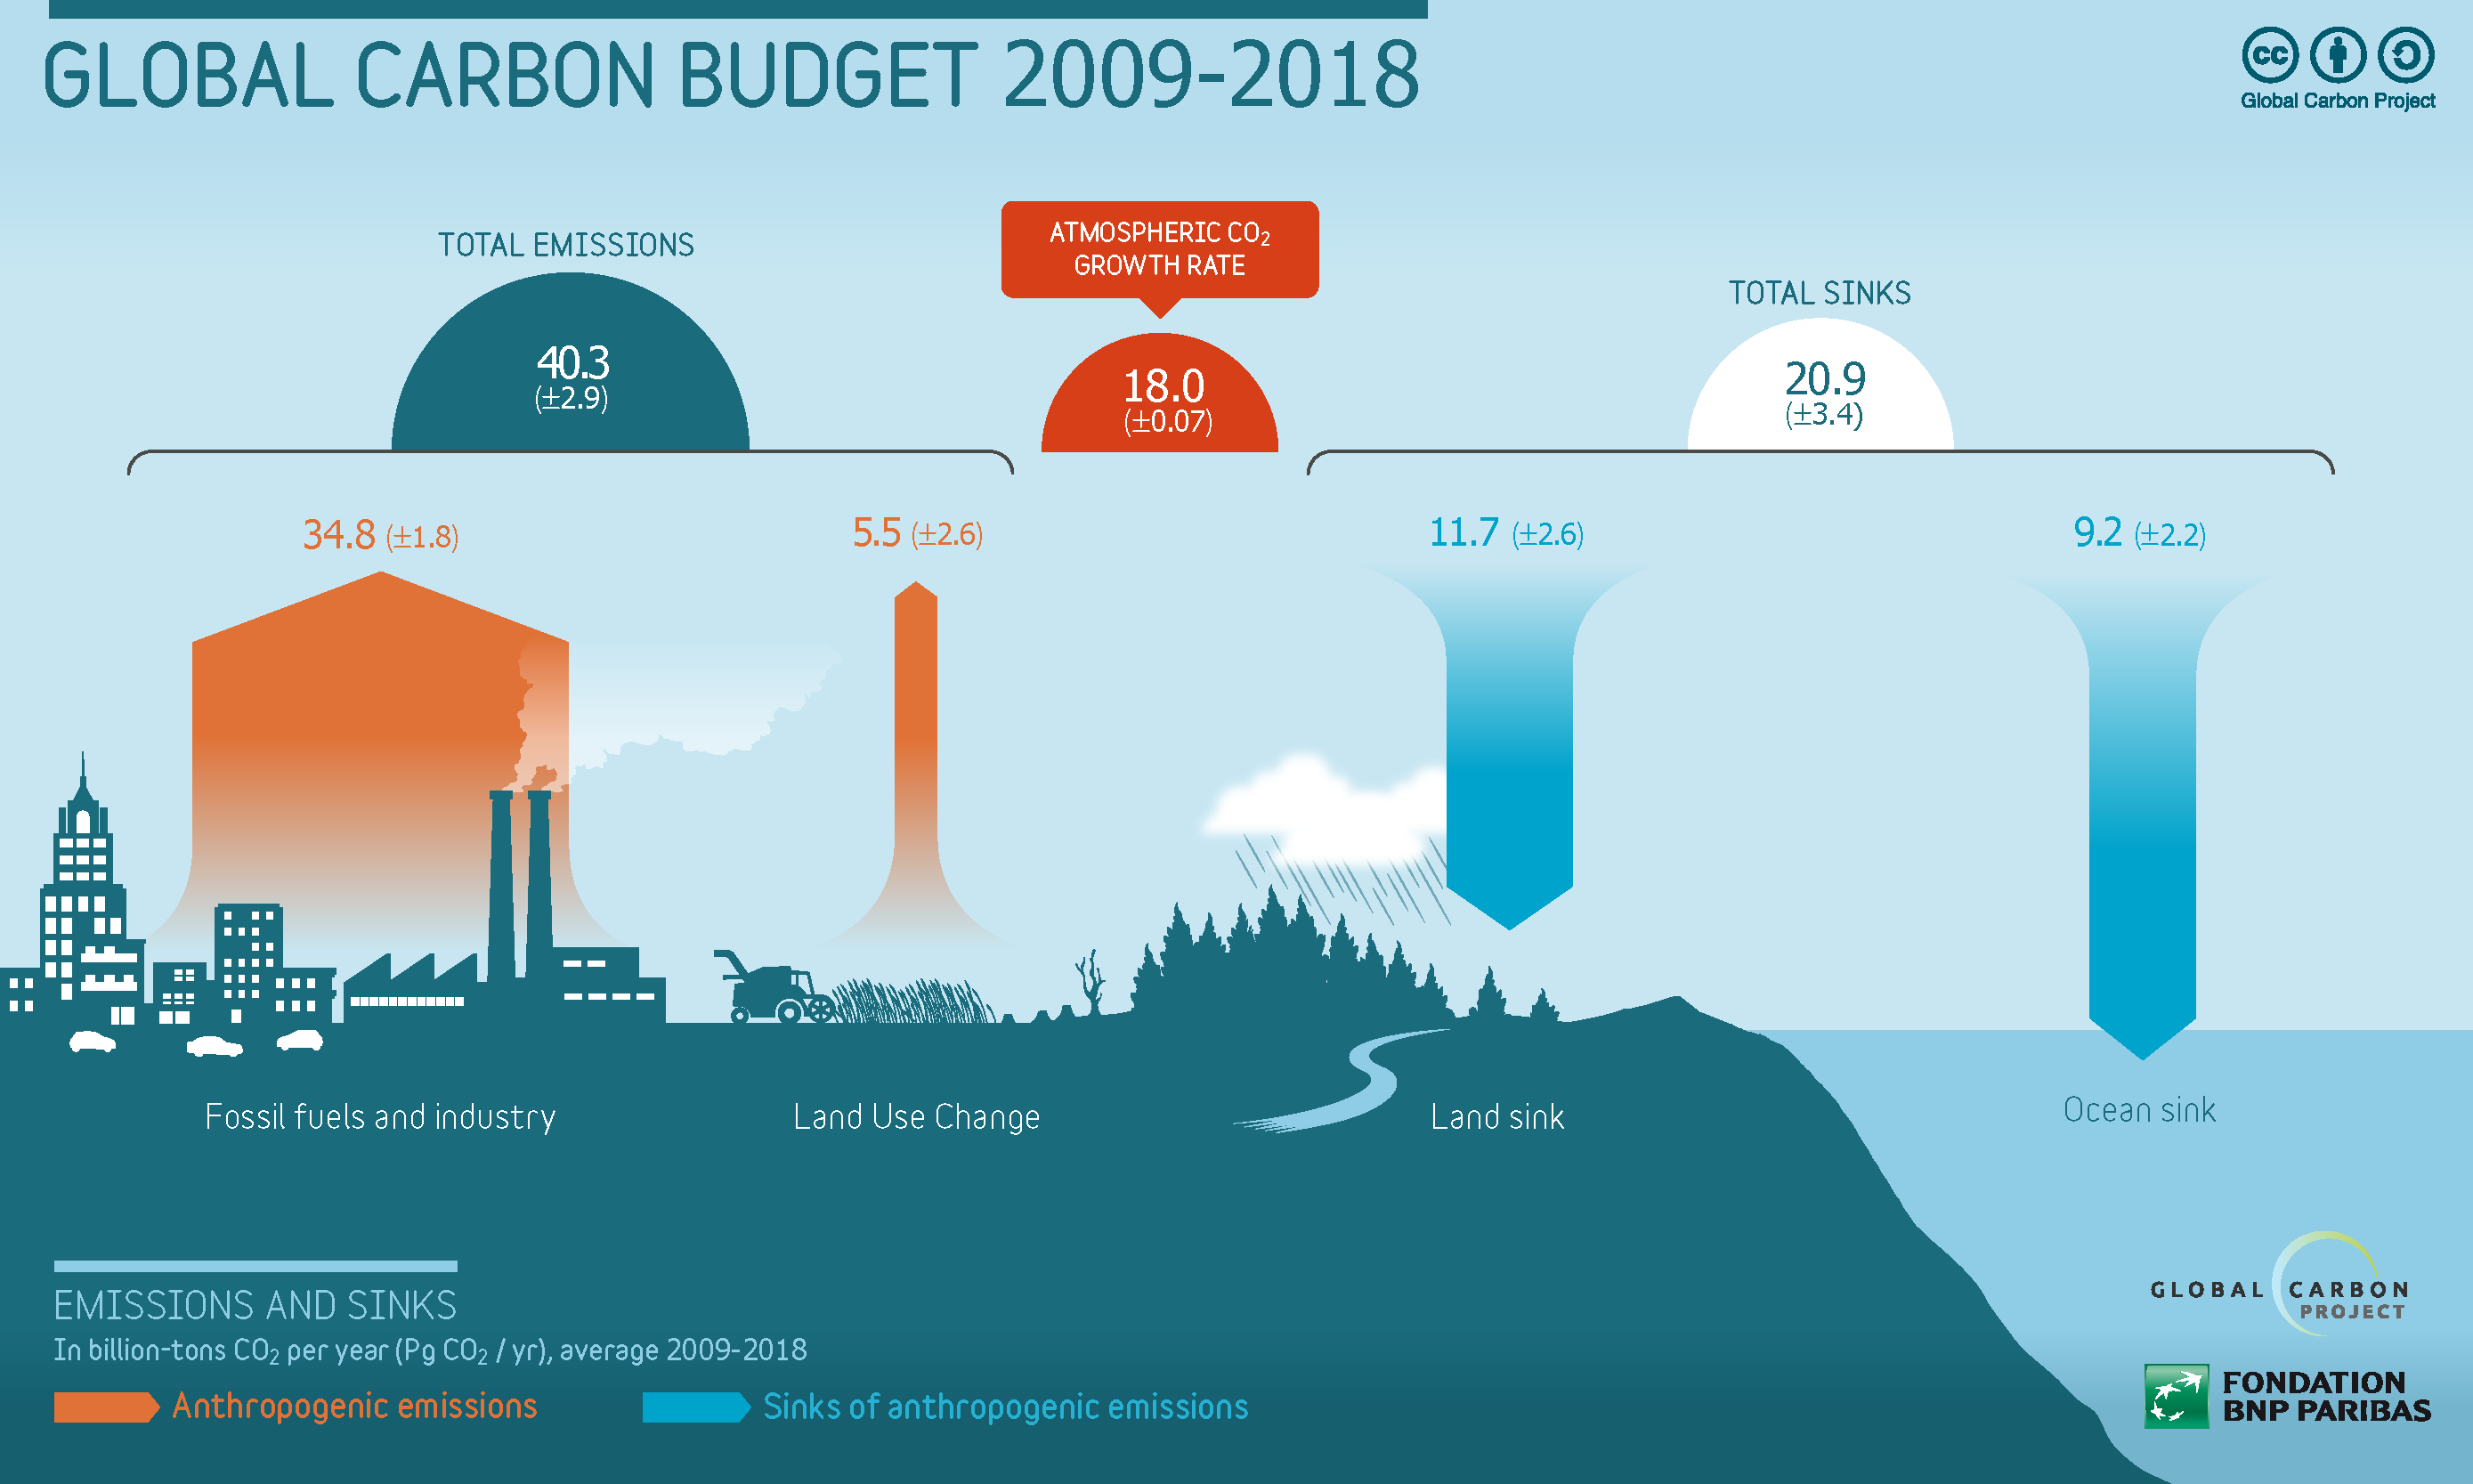 Global Carbon Budget 2009-2018